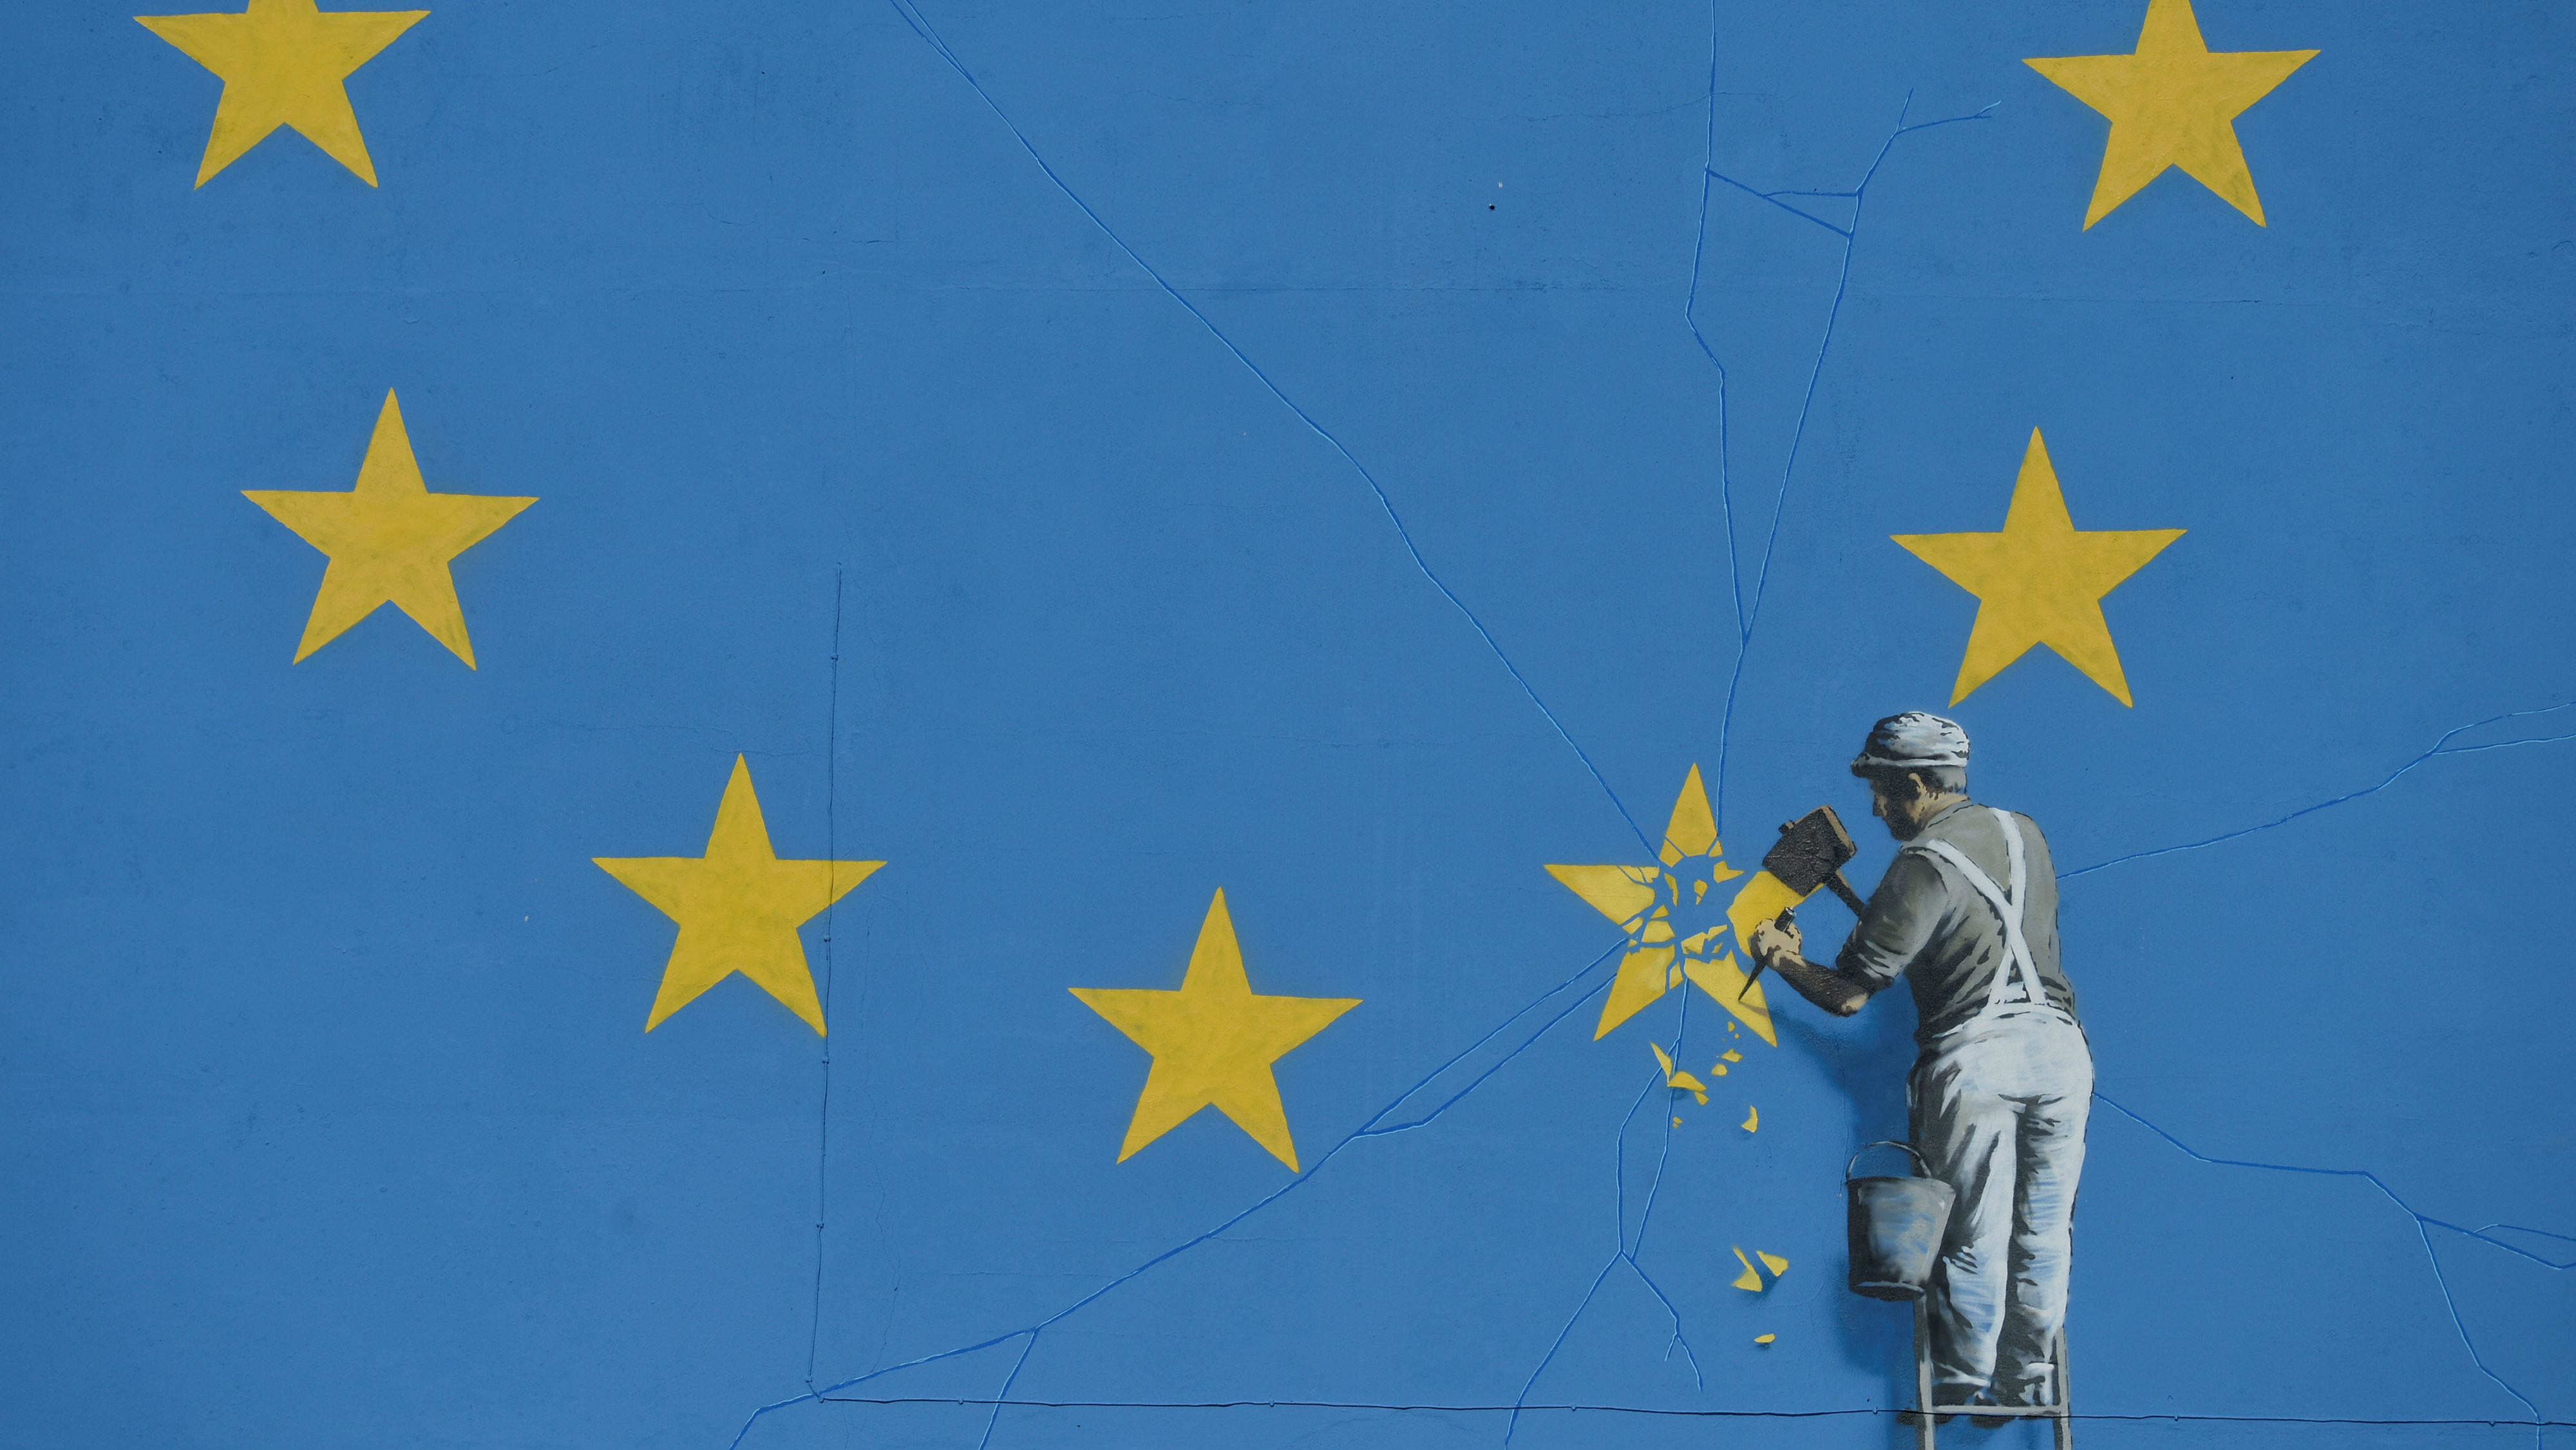 Banksy artwork in Dover depicting a workman chipping away at one of the 12 stars on the flag of the European Union